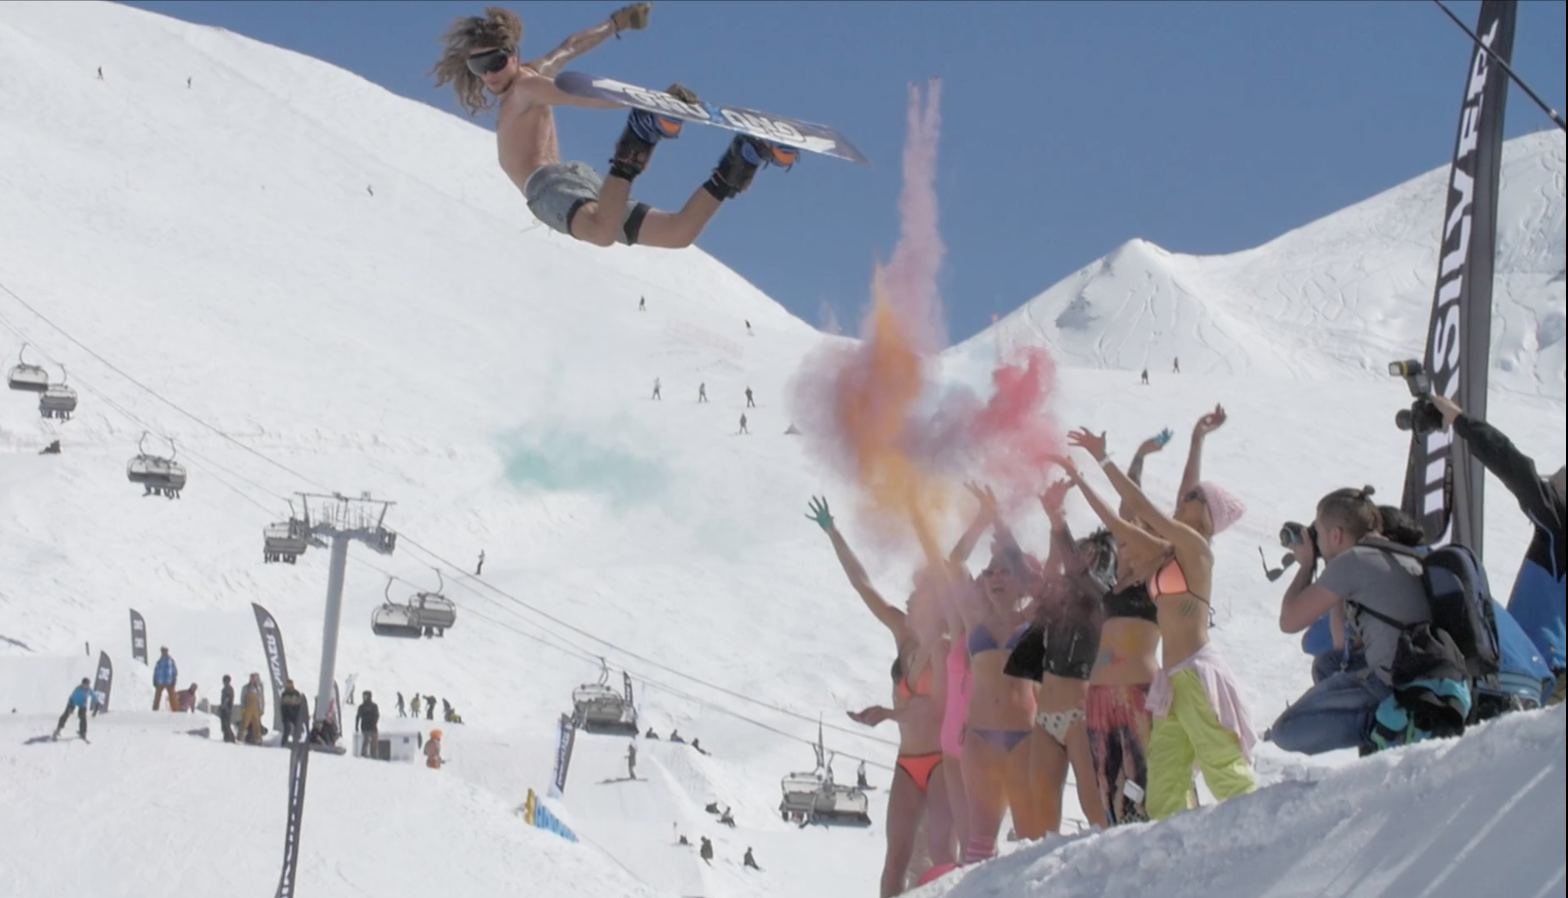 ... Snowboarders Don't Party Enough? | Even Olympic curlers dope more